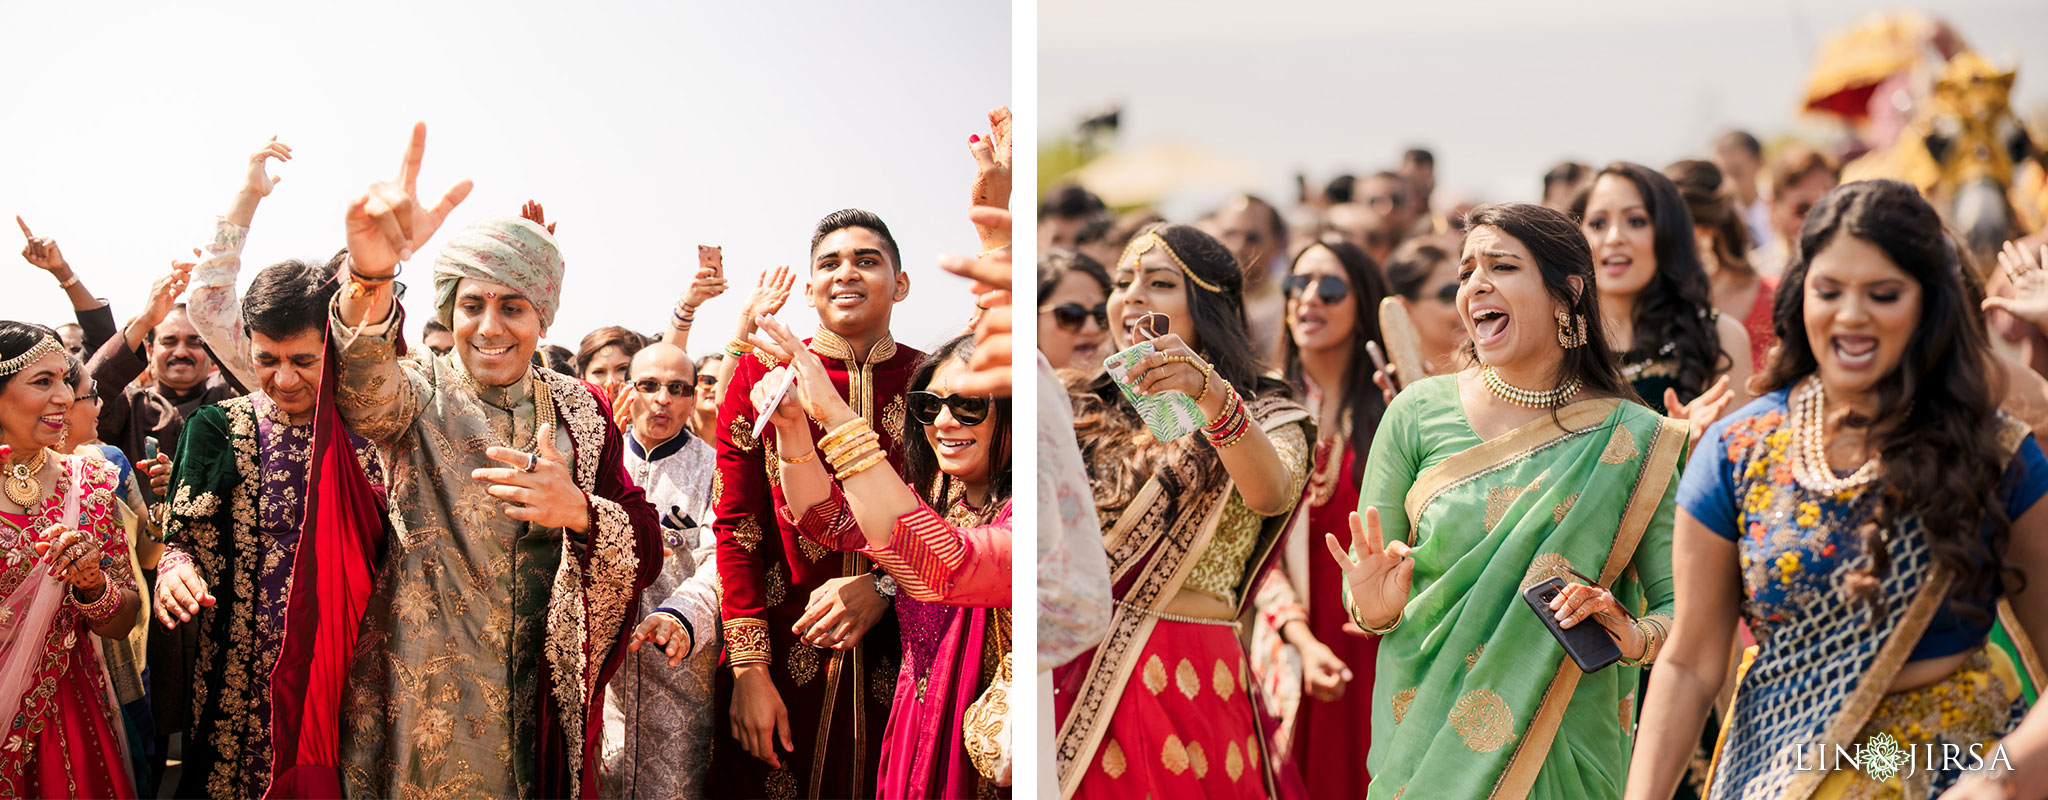 027 terranea resort rancho palos verdes indian wedding baraat photography